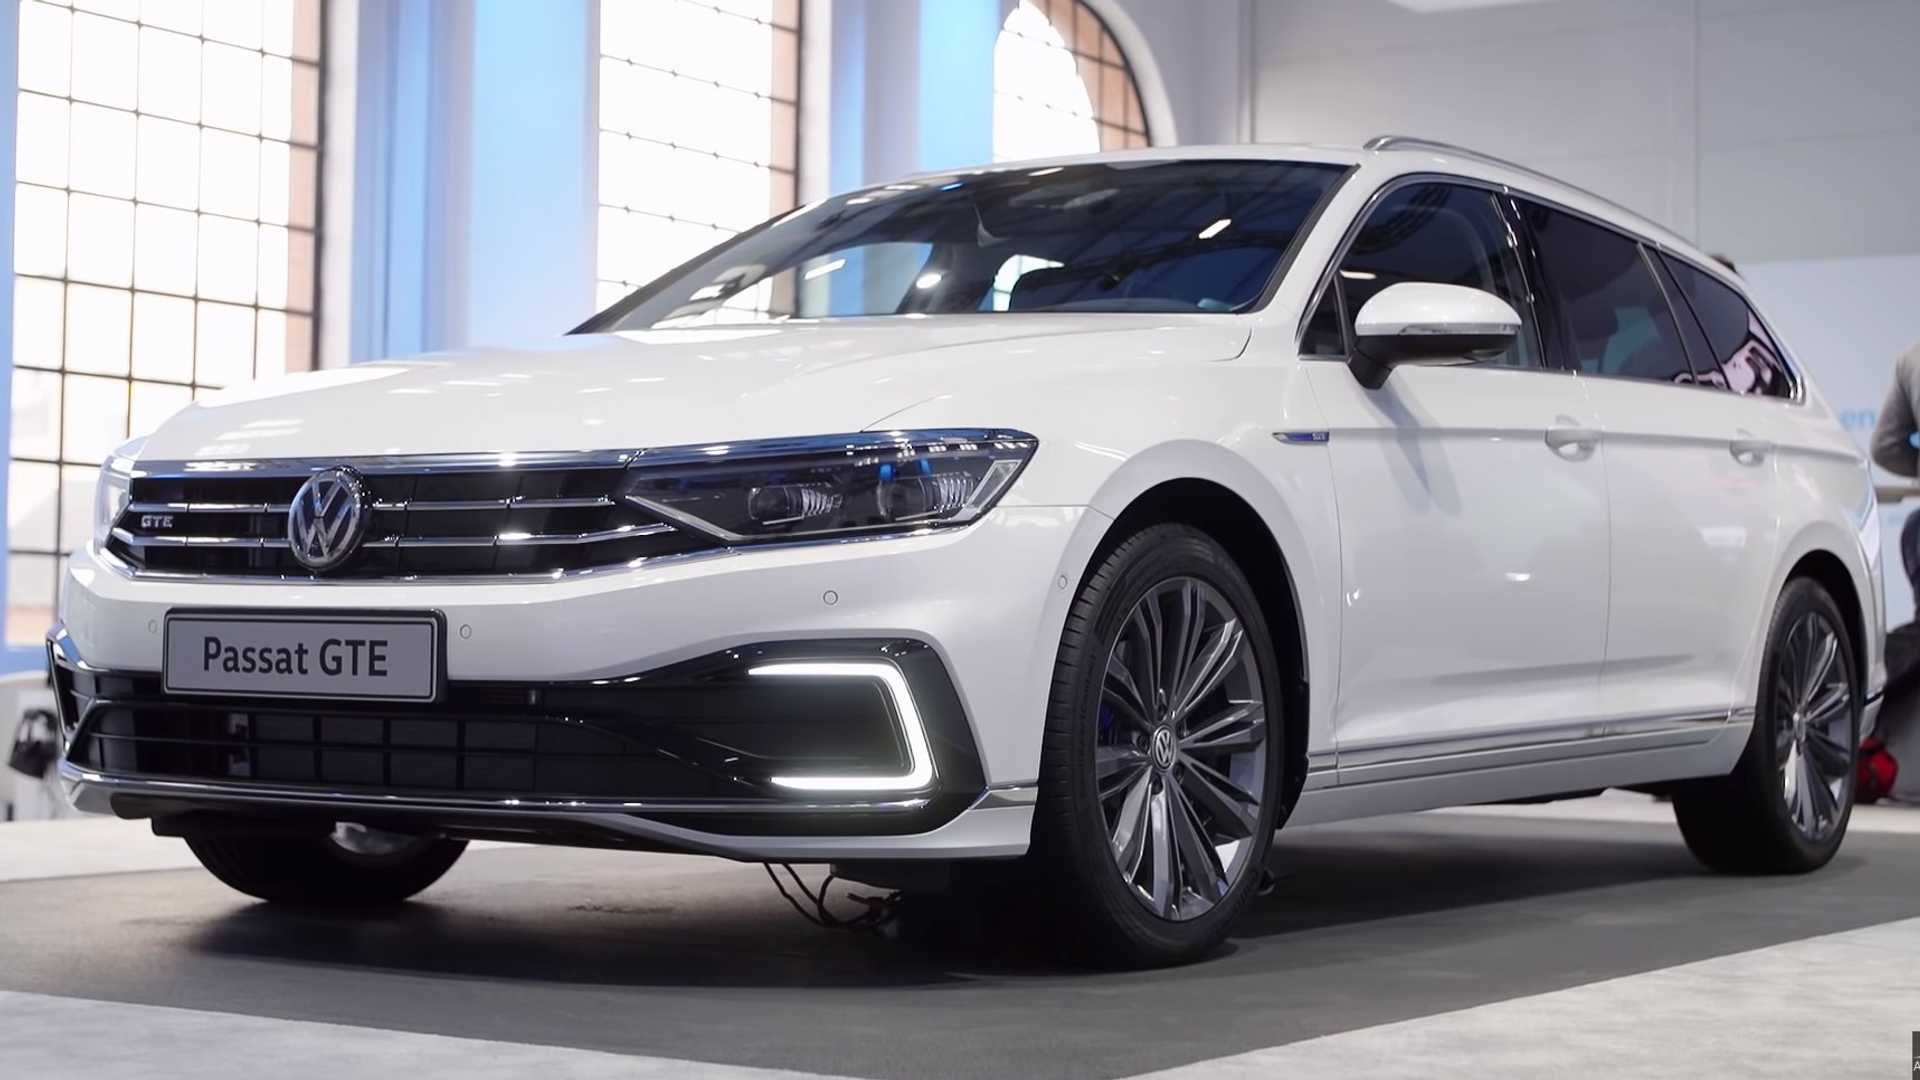 30 Concept of 2020 Volkswagen Passat Wagon Prices by 2020 Volkswagen Passat Wagon